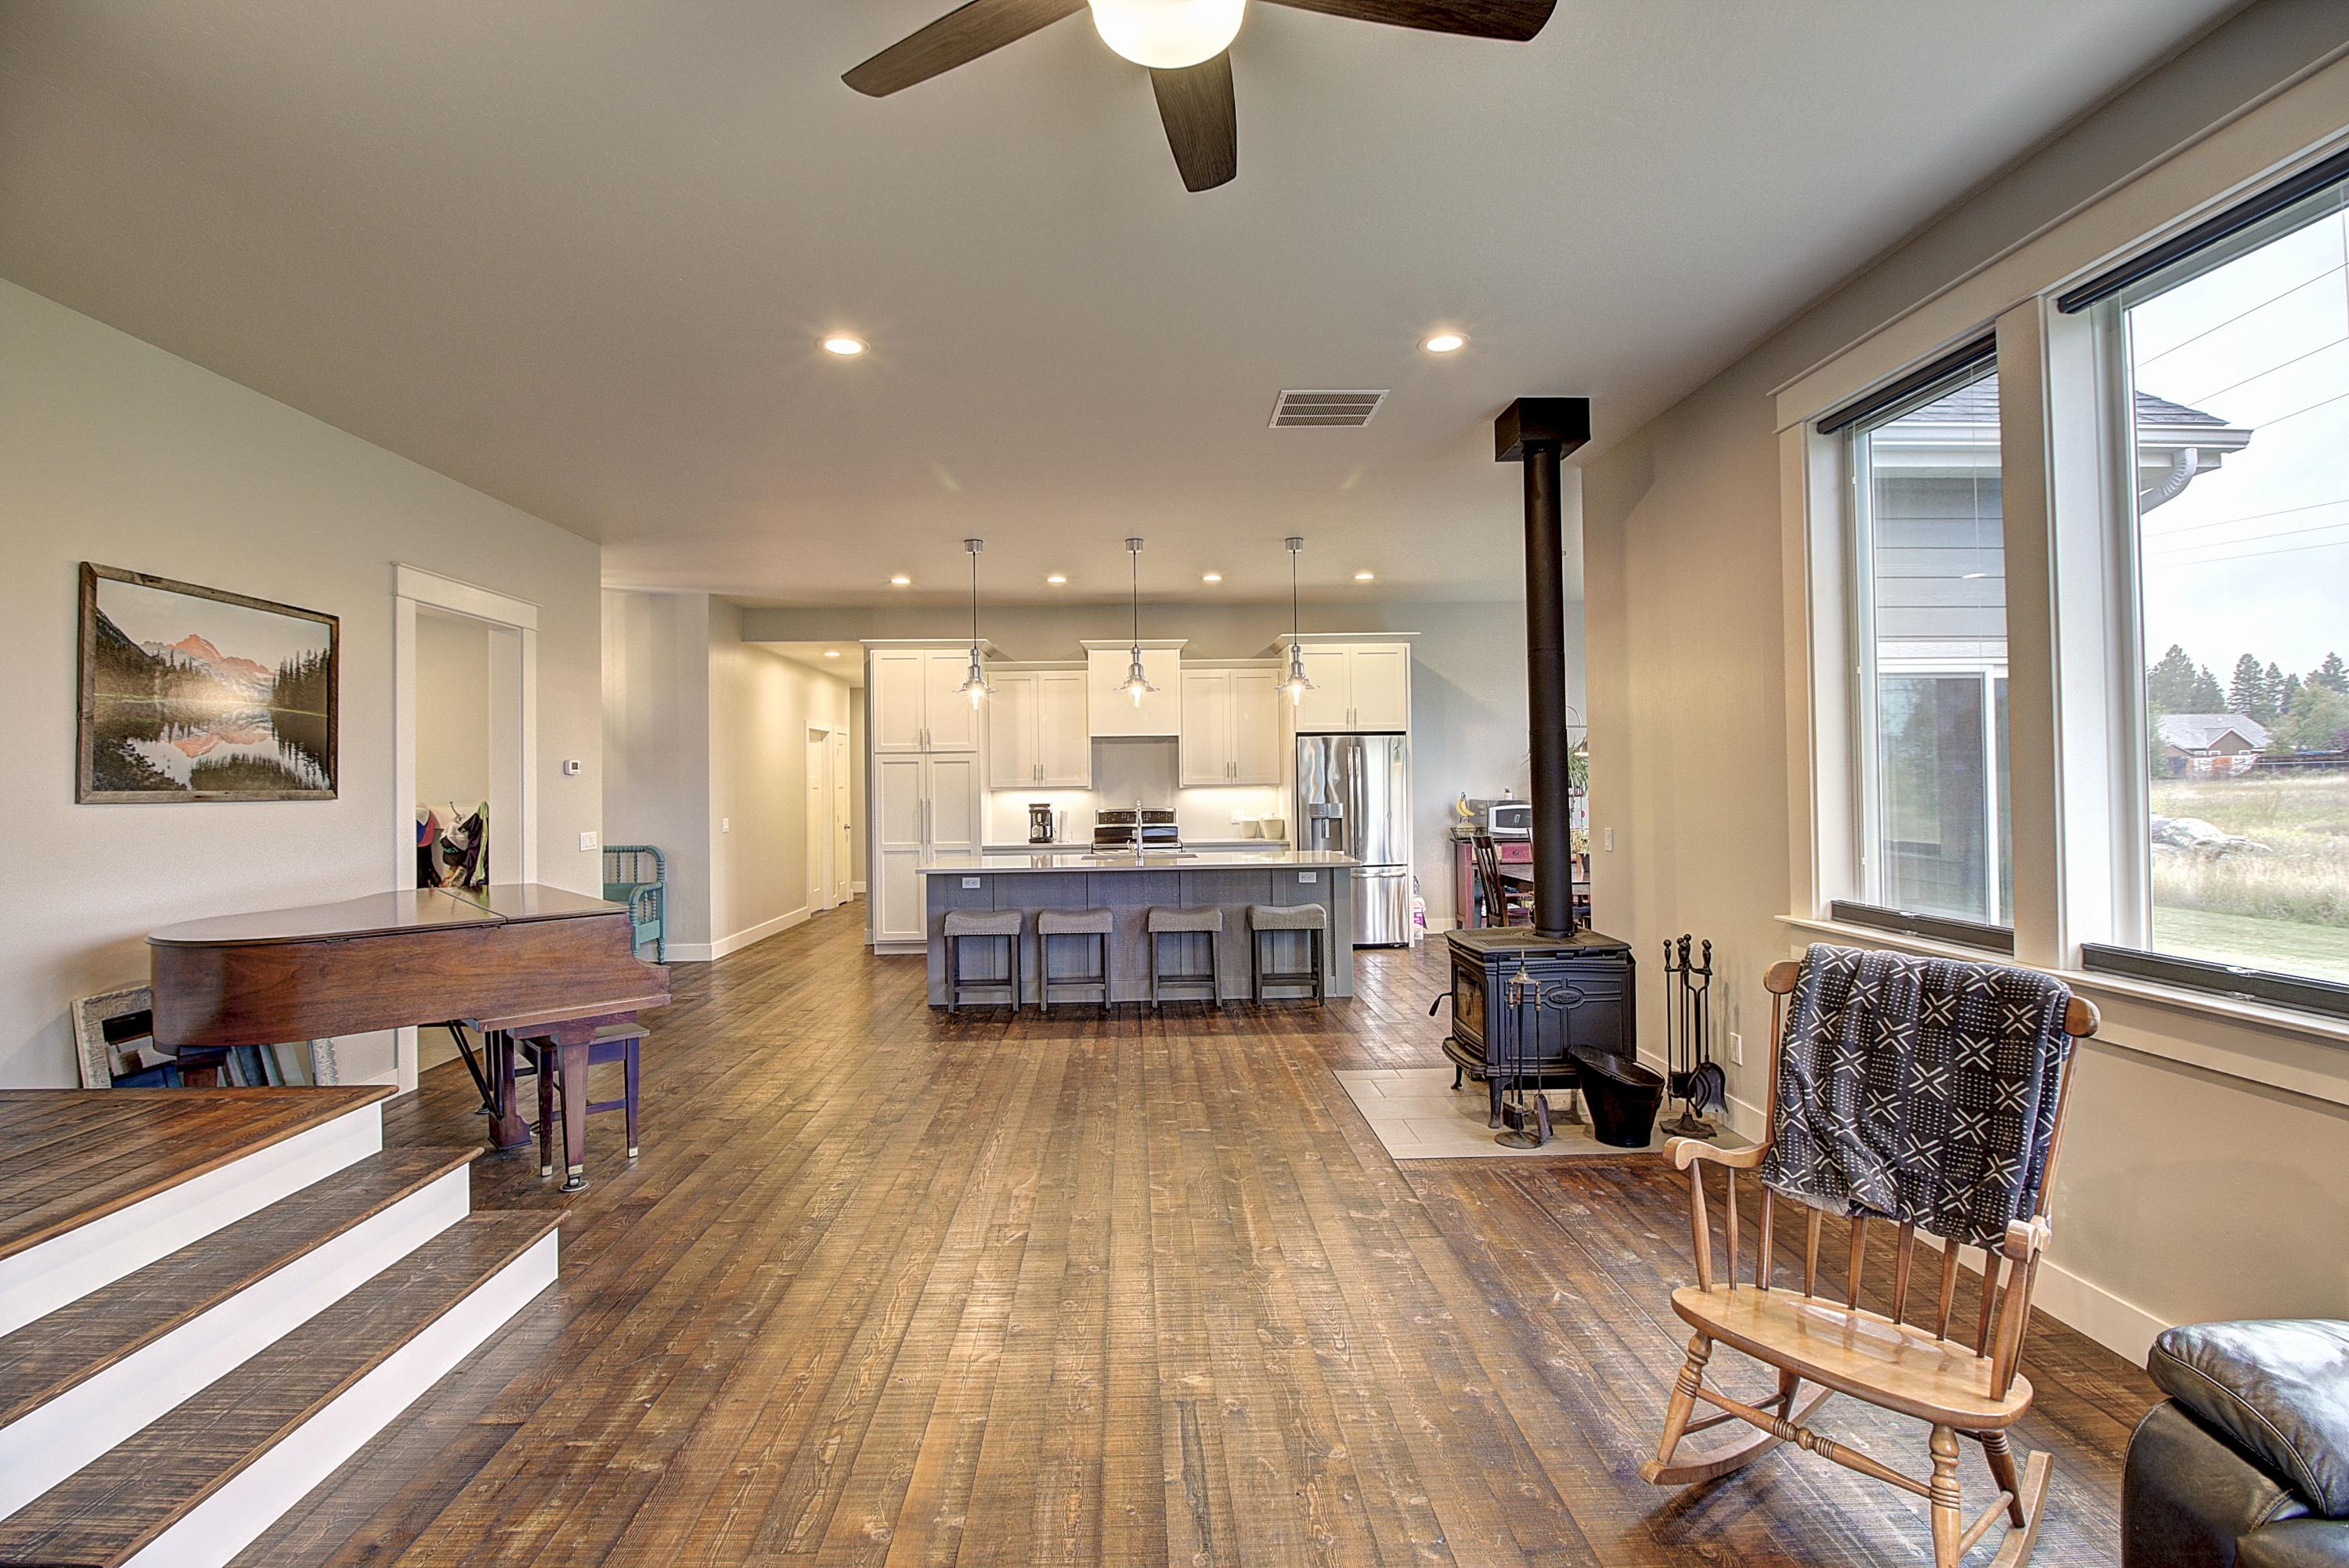 Living Room to Kitchen View